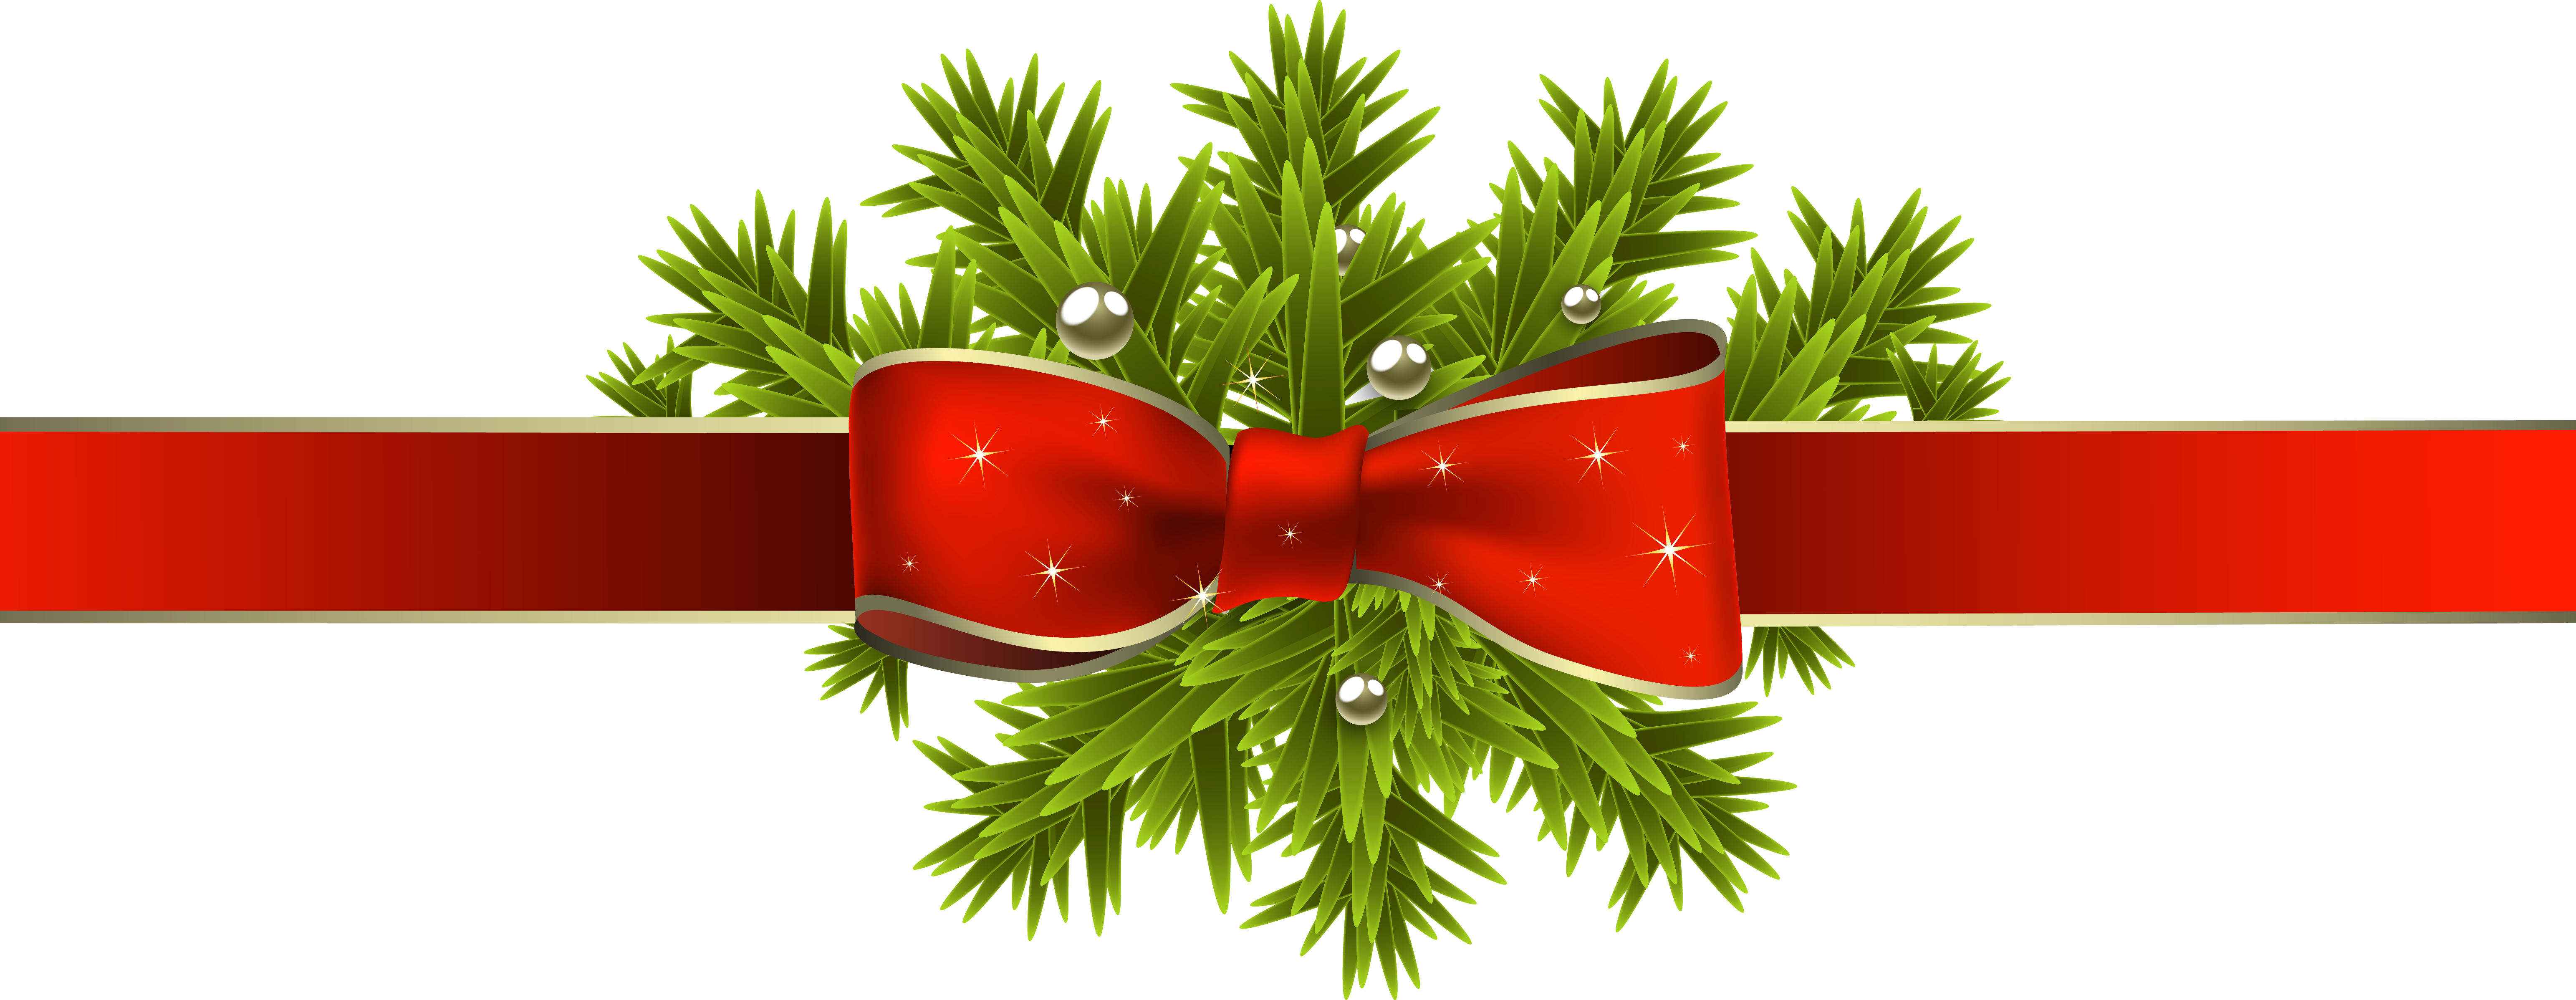 Christmas boughs clipart graphic download 28+ Collection of Christmas Branches Clipart | High quality, free ... graphic download